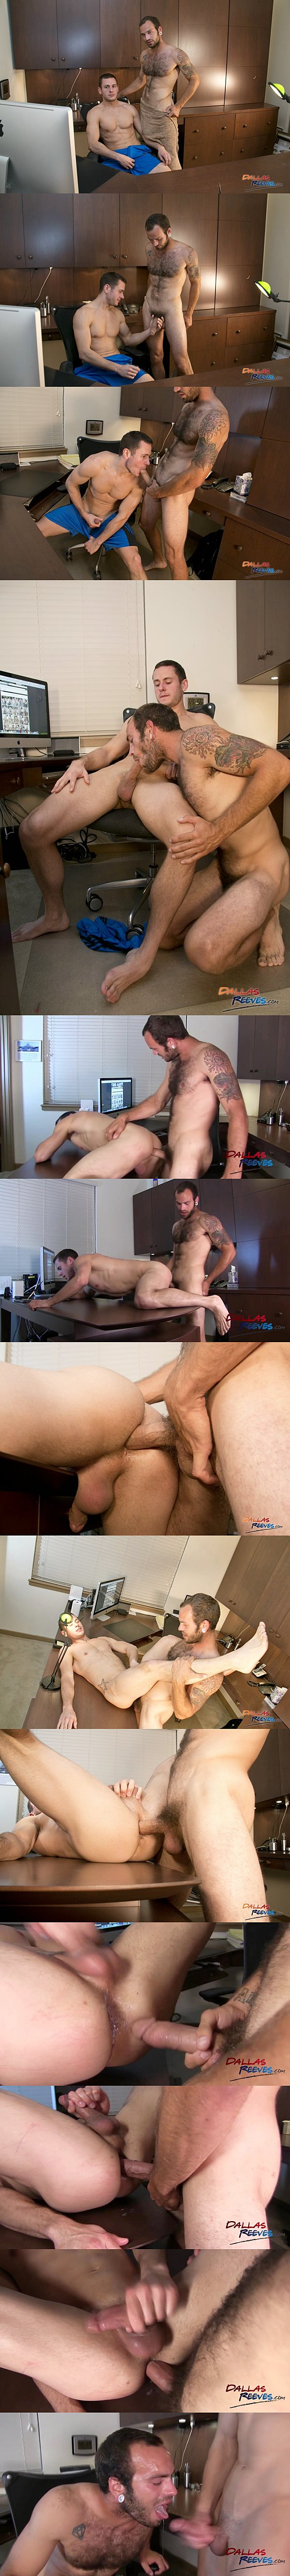 Hairy and hung stud Maxx Fitch barebacks and breeds Dalton Pierce's bubble ass at Dallasreeves 02